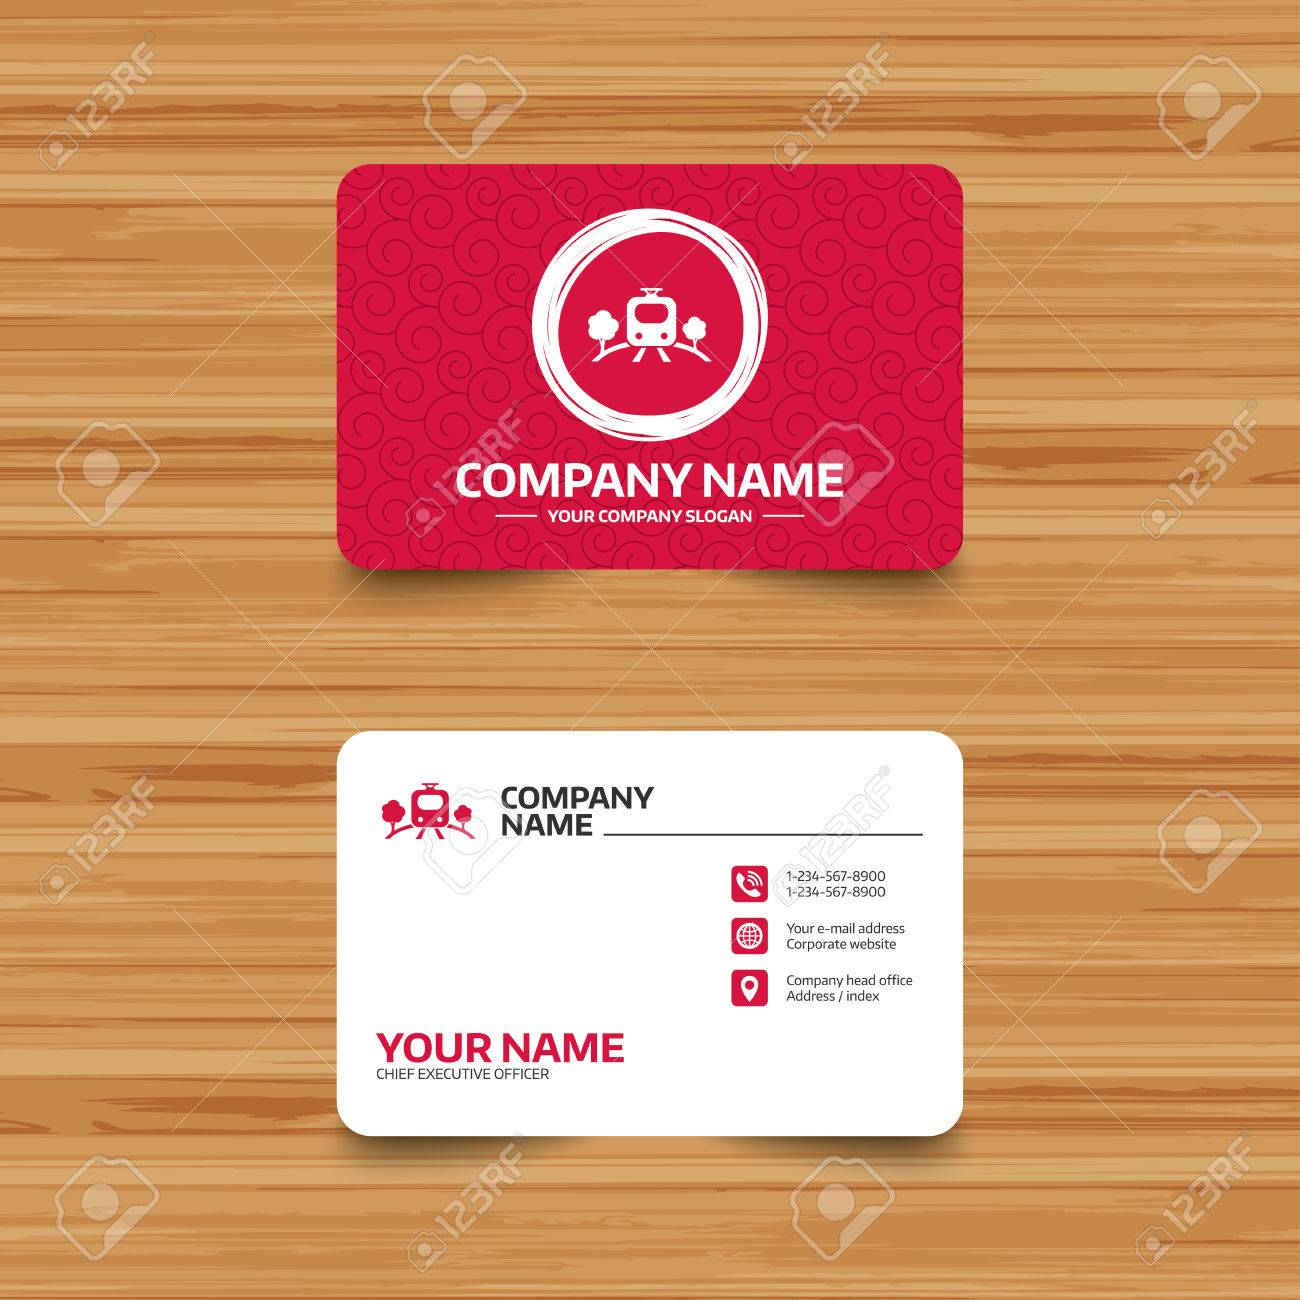 Business Card Template With Texture. Overground Subway Sign Icon ...